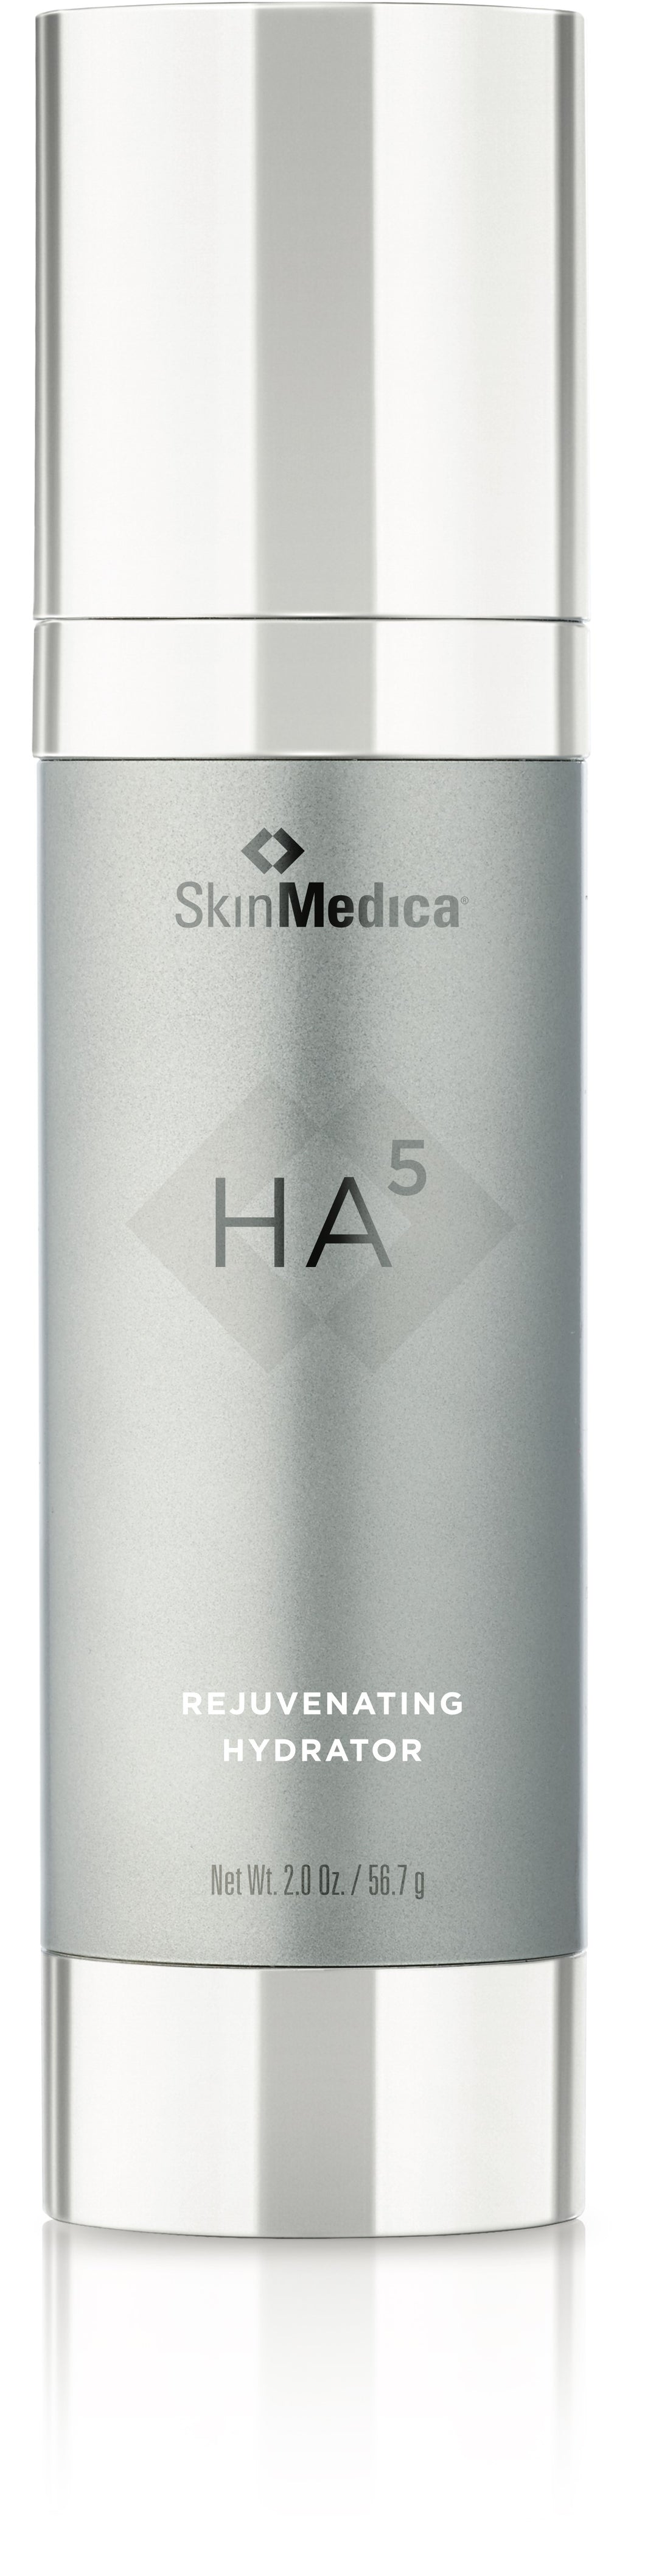 HA5 TM Rejuvenating Hydrator